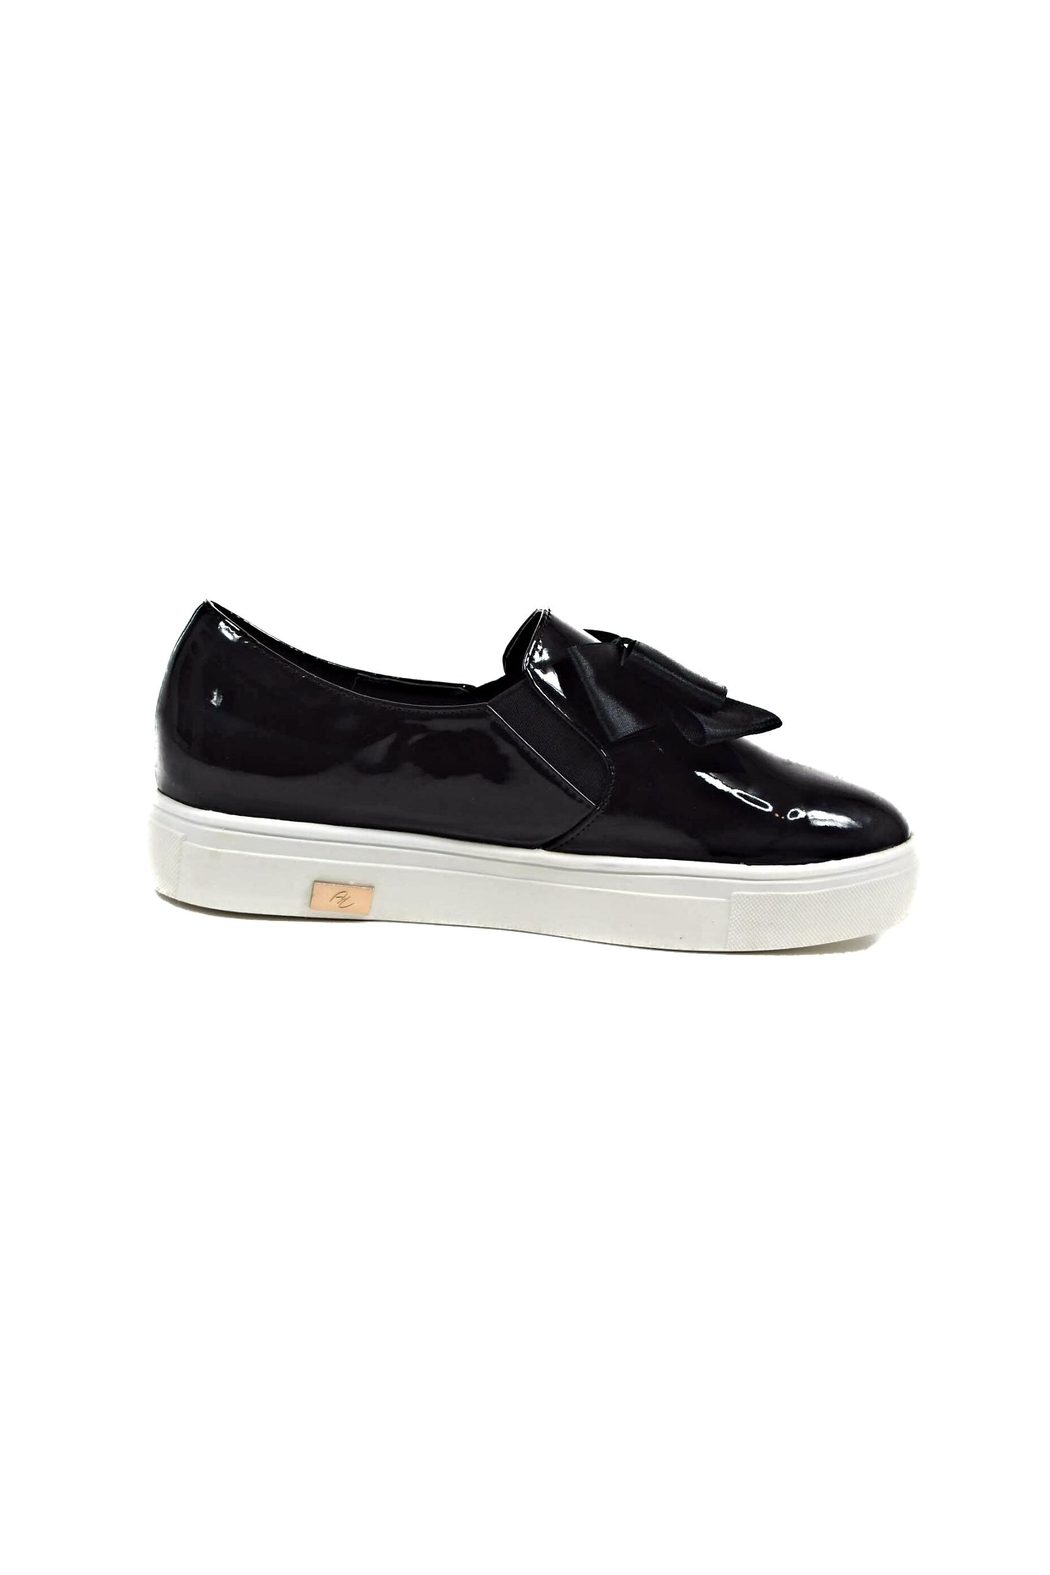 Ana Colina Boutique Black Bow Sneakers - Side Cropped Image